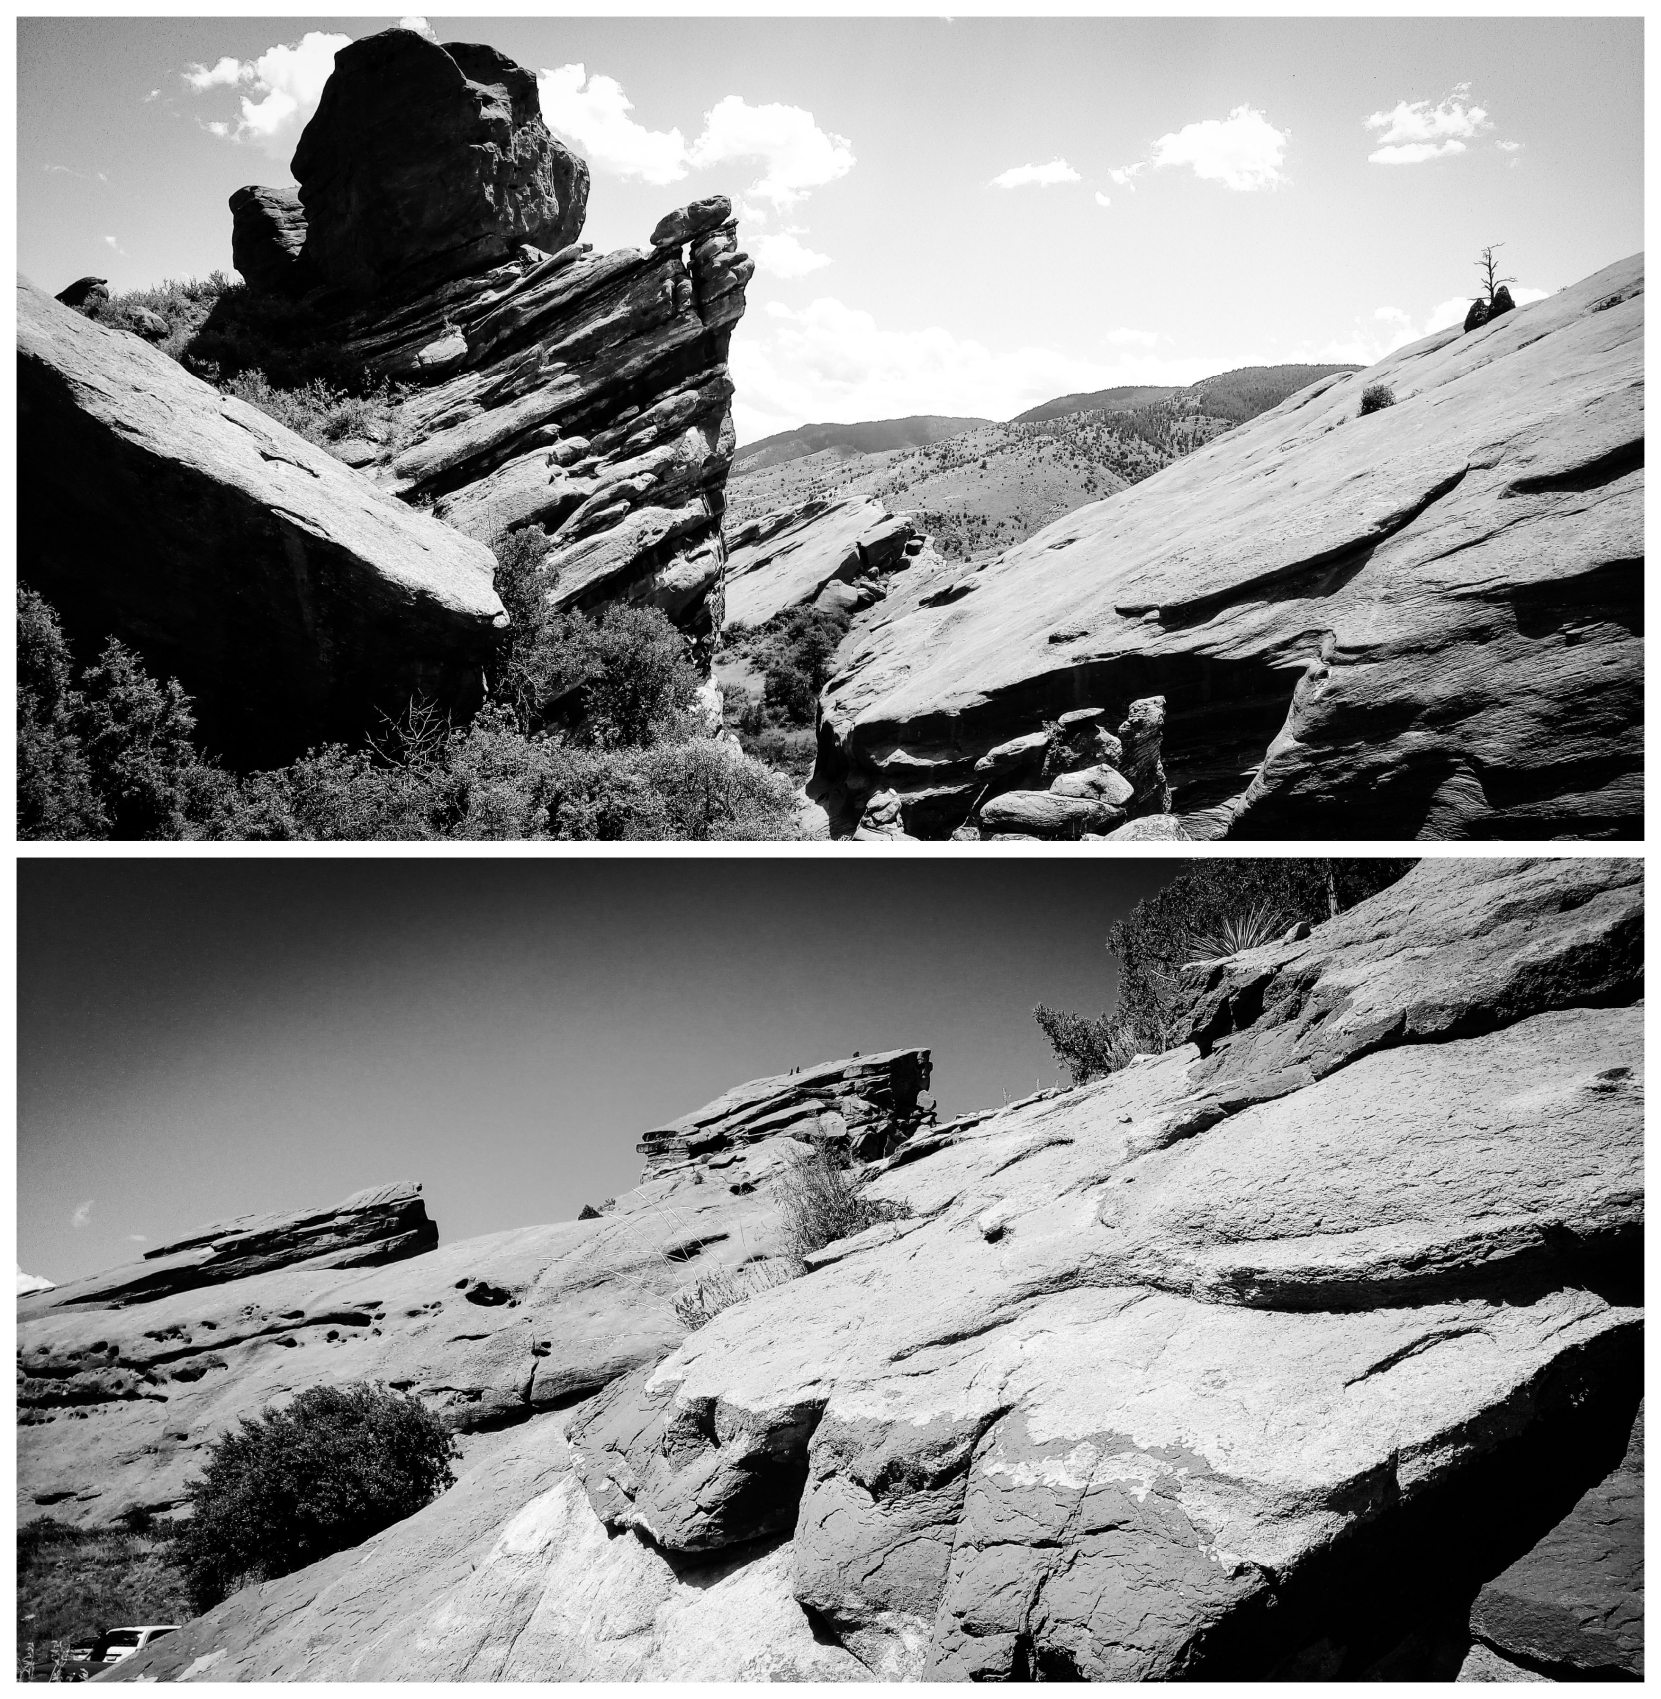 Nature Photos B&W - Nr Morrison, Colorado, US. 'Red Rocks Park.' The rock formations are over 200 million years old. sketchbookexplorer.com @davidasutton @sketchbookexplorer Facebook.com/davidanthonysutton #redrocksparkcolorado #colorado #redrocksamphitheatre #unitedstates #USA #travel #travelblog #photography #nature #wildwest